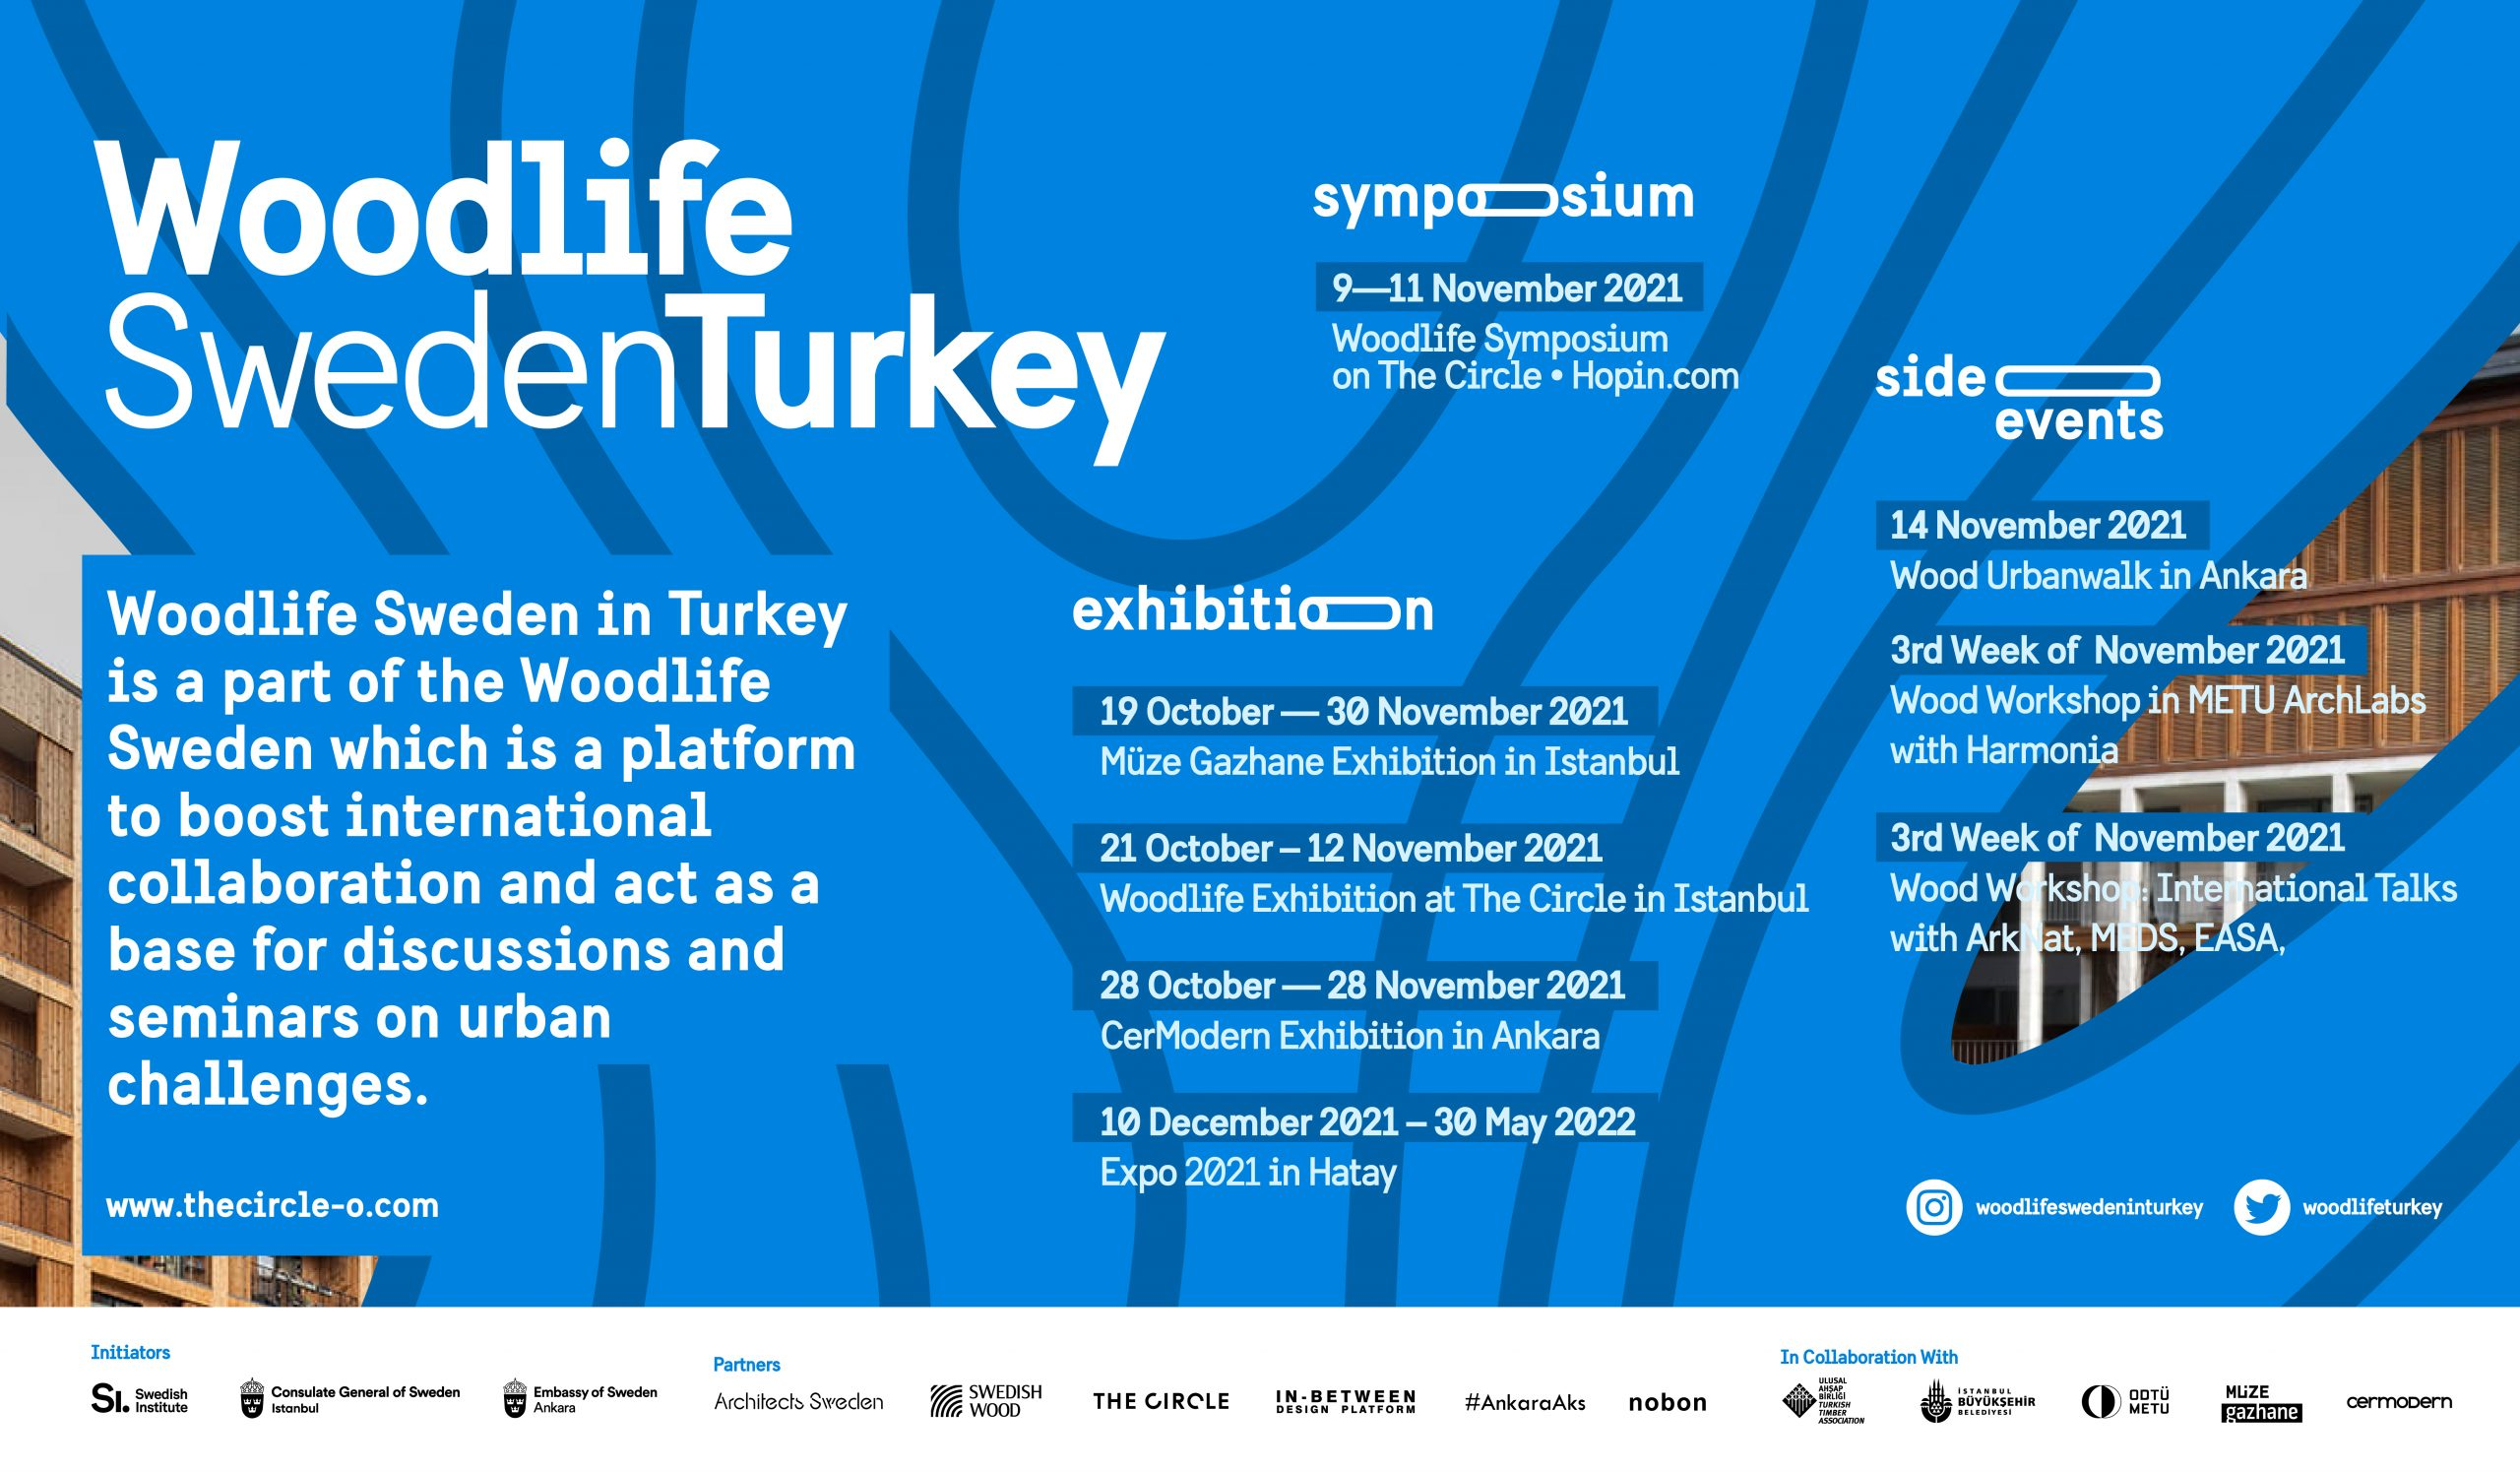 WOODLIFE SWEDEN TURKEY – A PLATFORM ON ARCHITECTURE, DESIGN AND SUSTAINABLE CITY-PLANNING